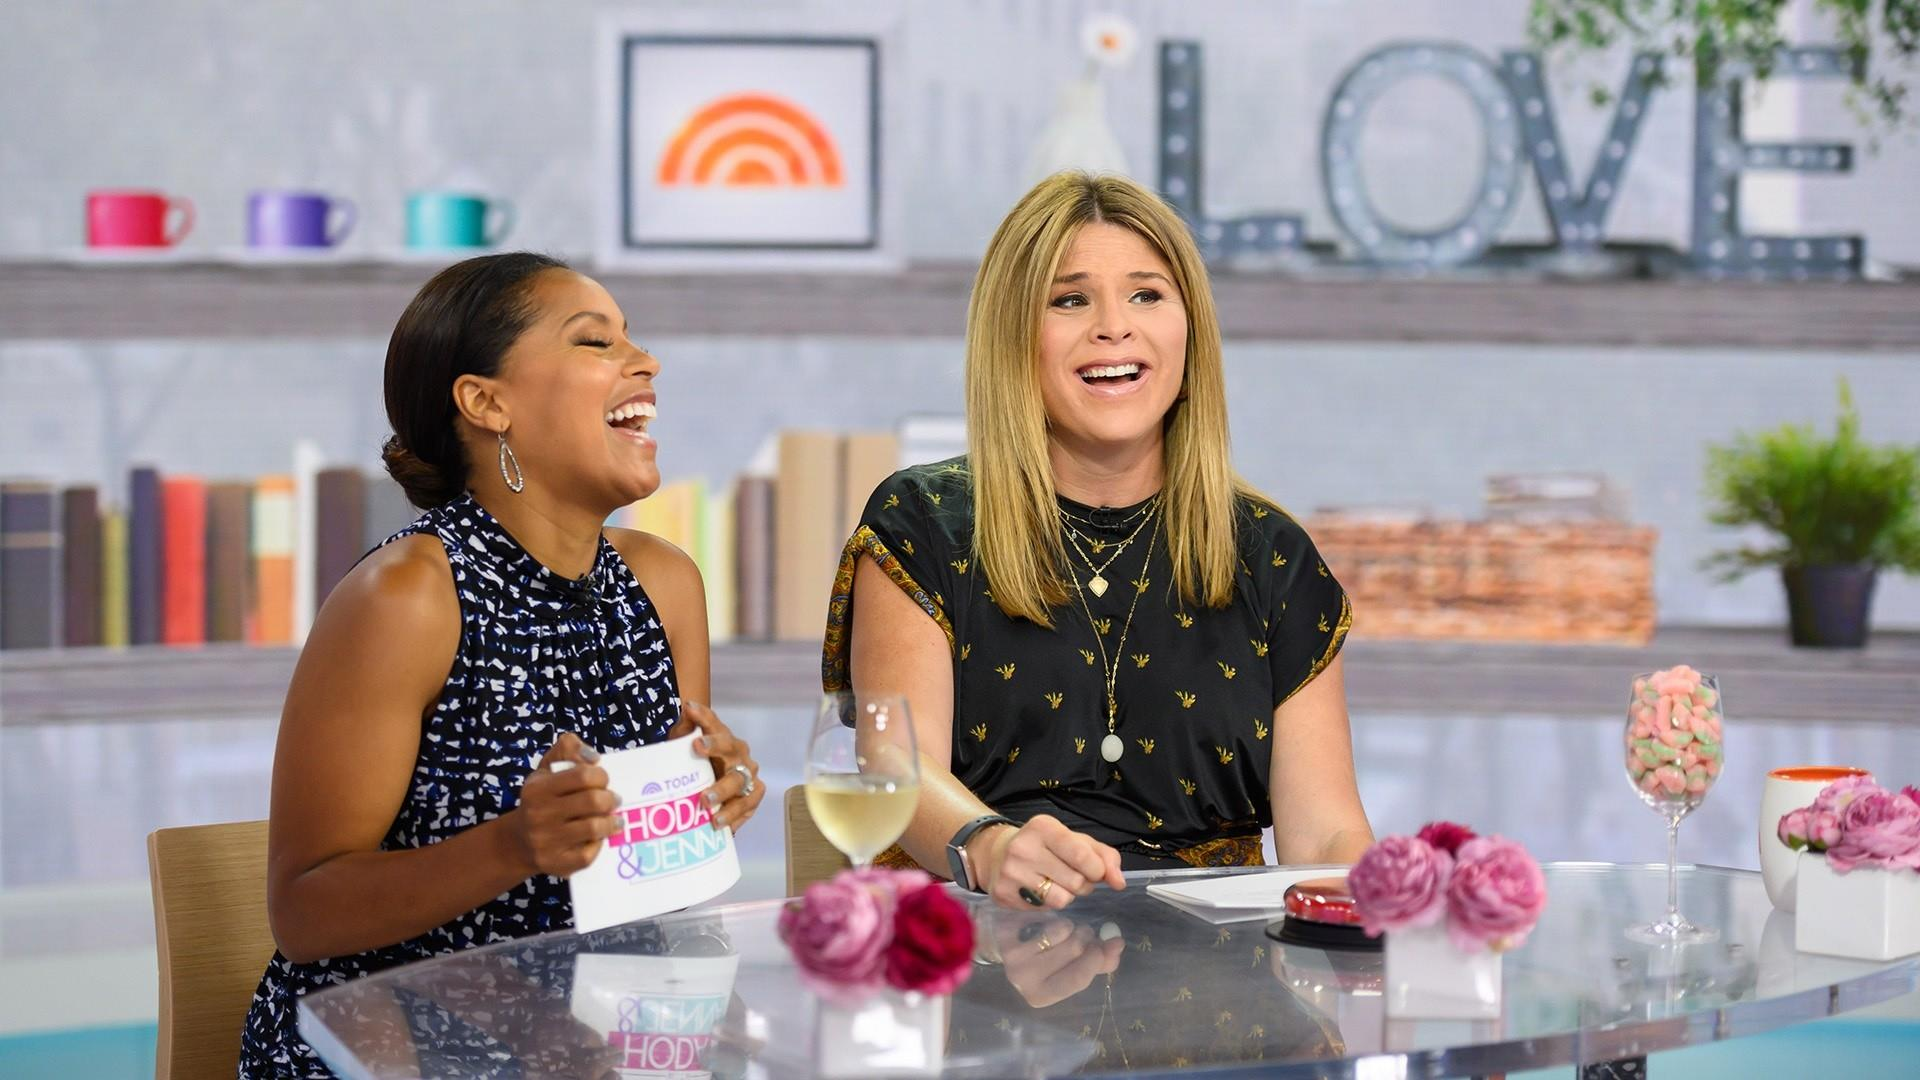 Jenna and Sheinelle share their most used emoji